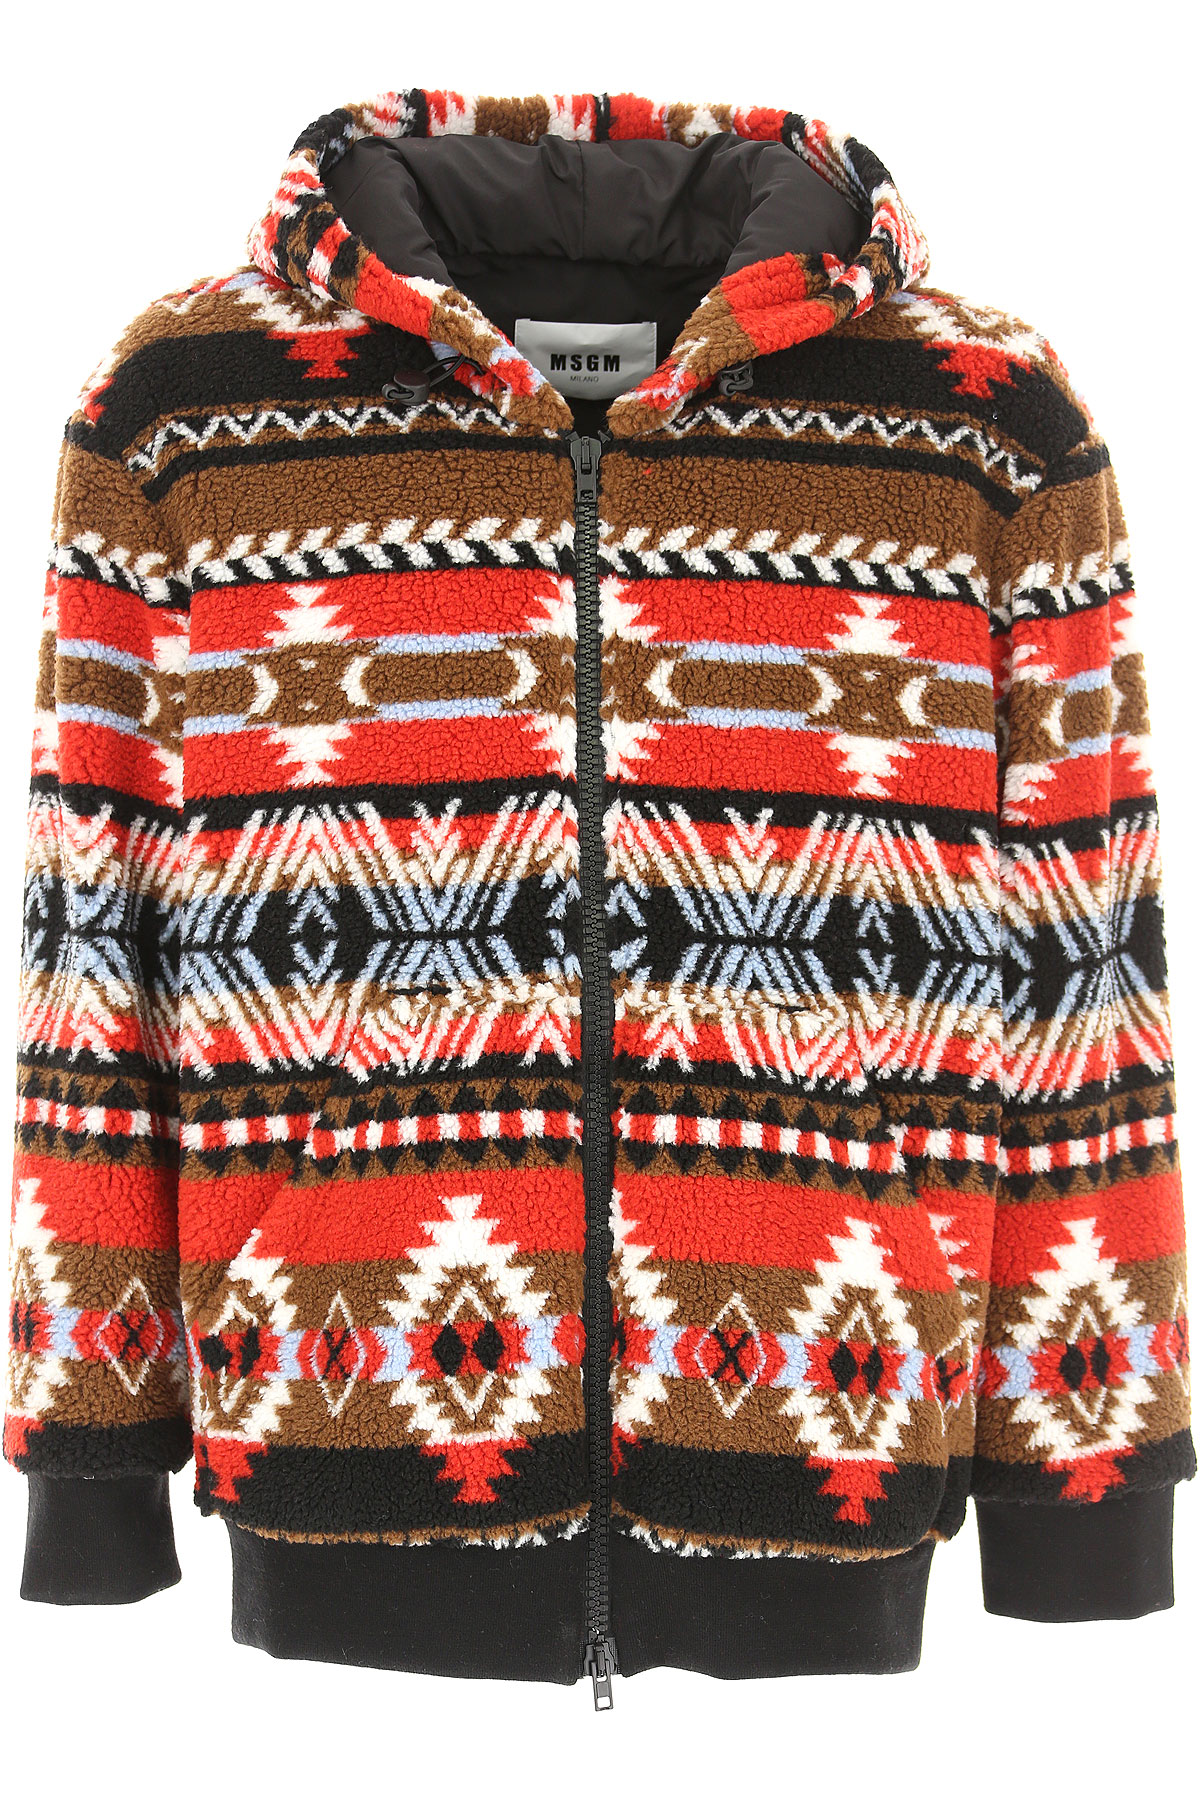 Image of MSGM Jacket for Men, Red, polyester, 2017, M S XS